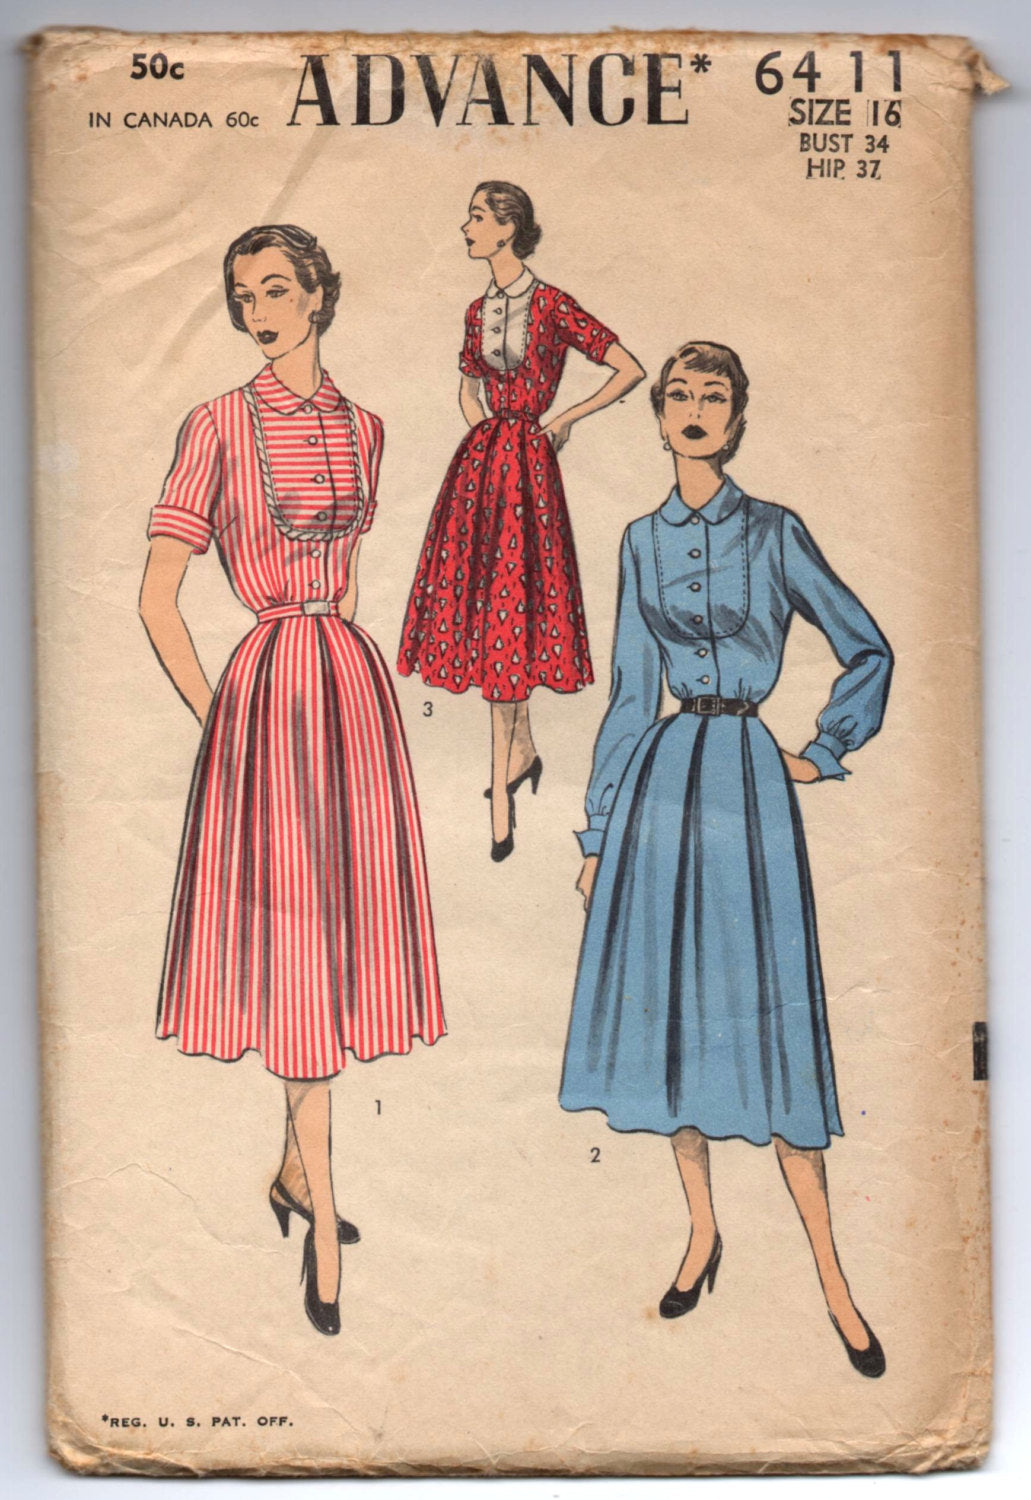 1950's Advance One-Piece Dress with contrast front Pattern - Bust 34